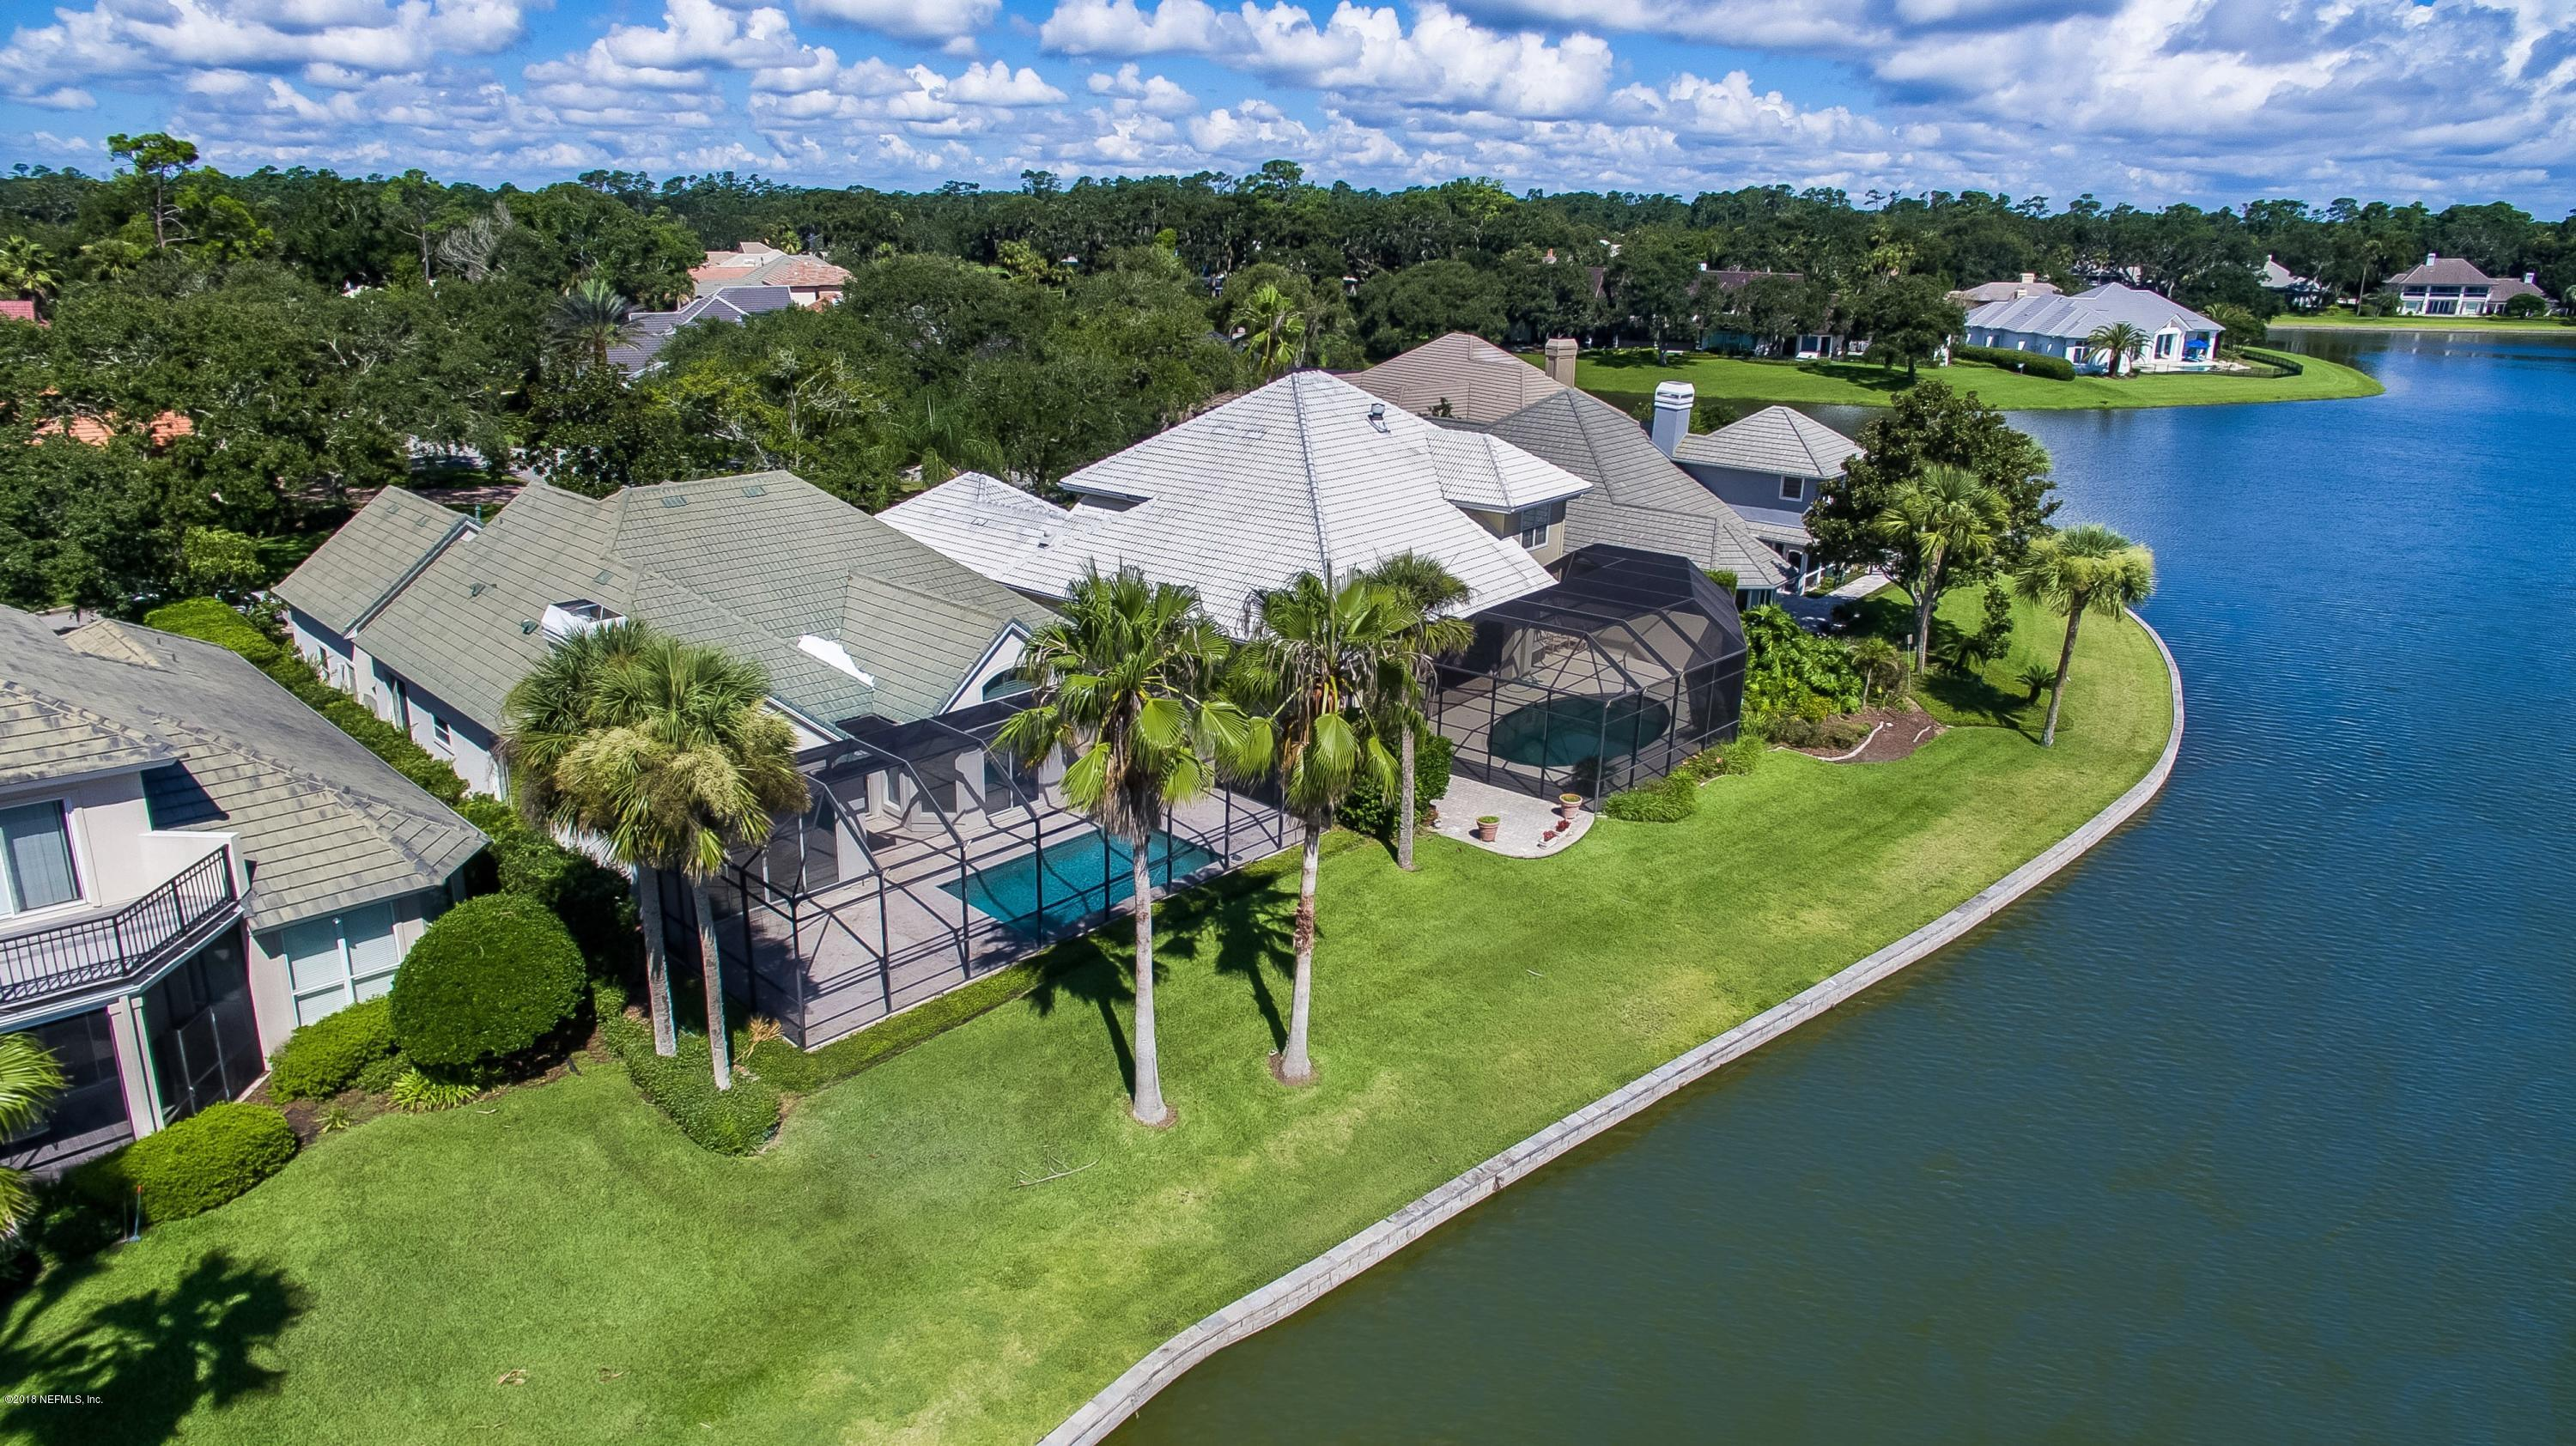 148 LAUREL, PONTE VEDRA BEACH, FLORIDA 32082, 3 Bedrooms Bedrooms, ,2 BathroomsBathrooms,Residential - single family,For sale,LAUREL,951055